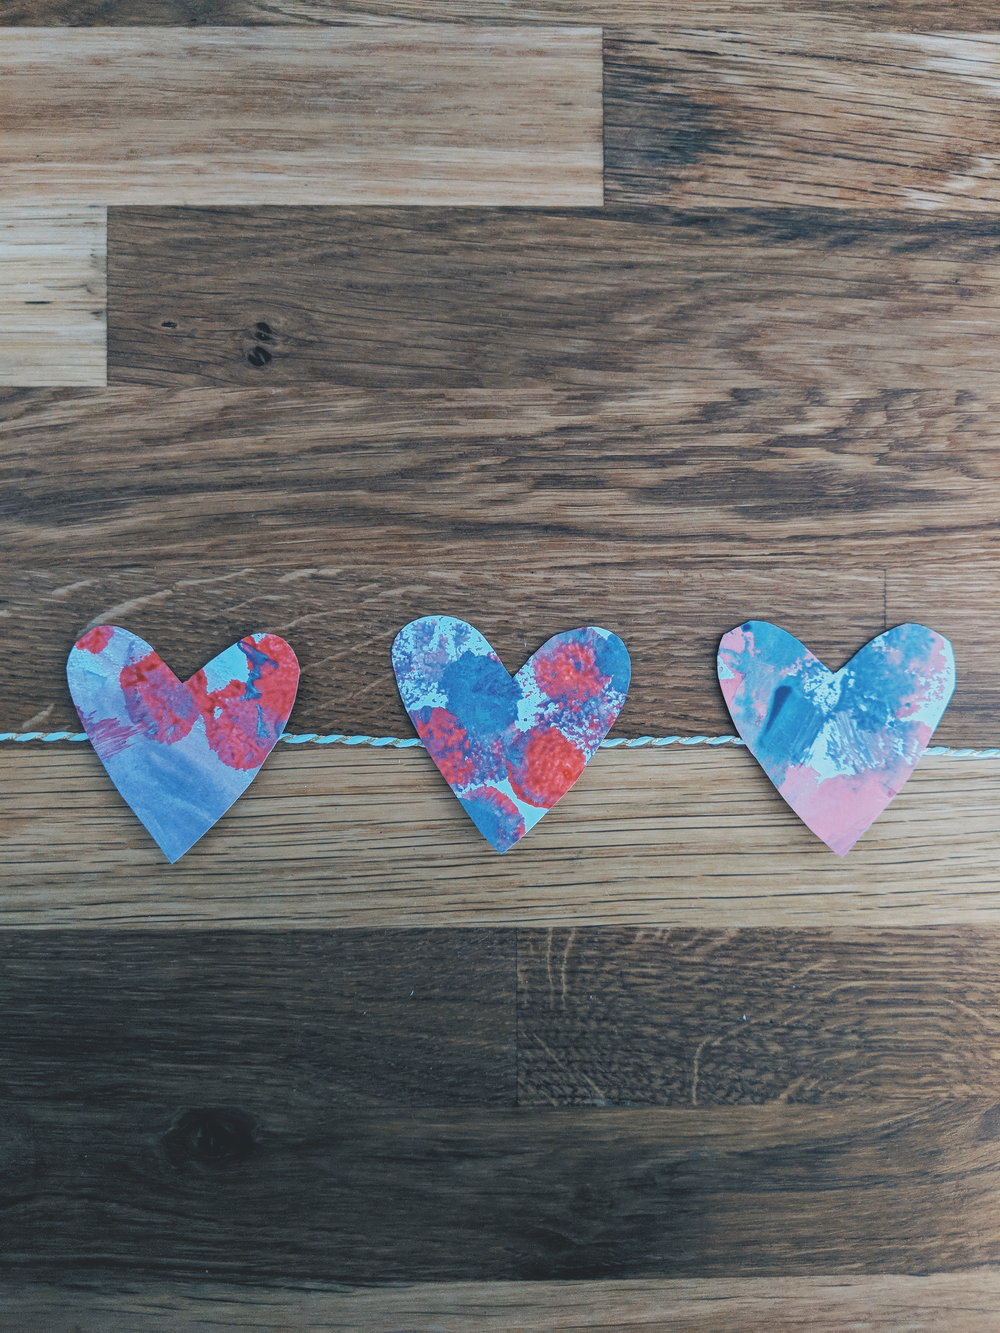 Pom Pom Painting DIY Heart Garland Activities for Toddlers www.momentswithmiss.com 11.jpg